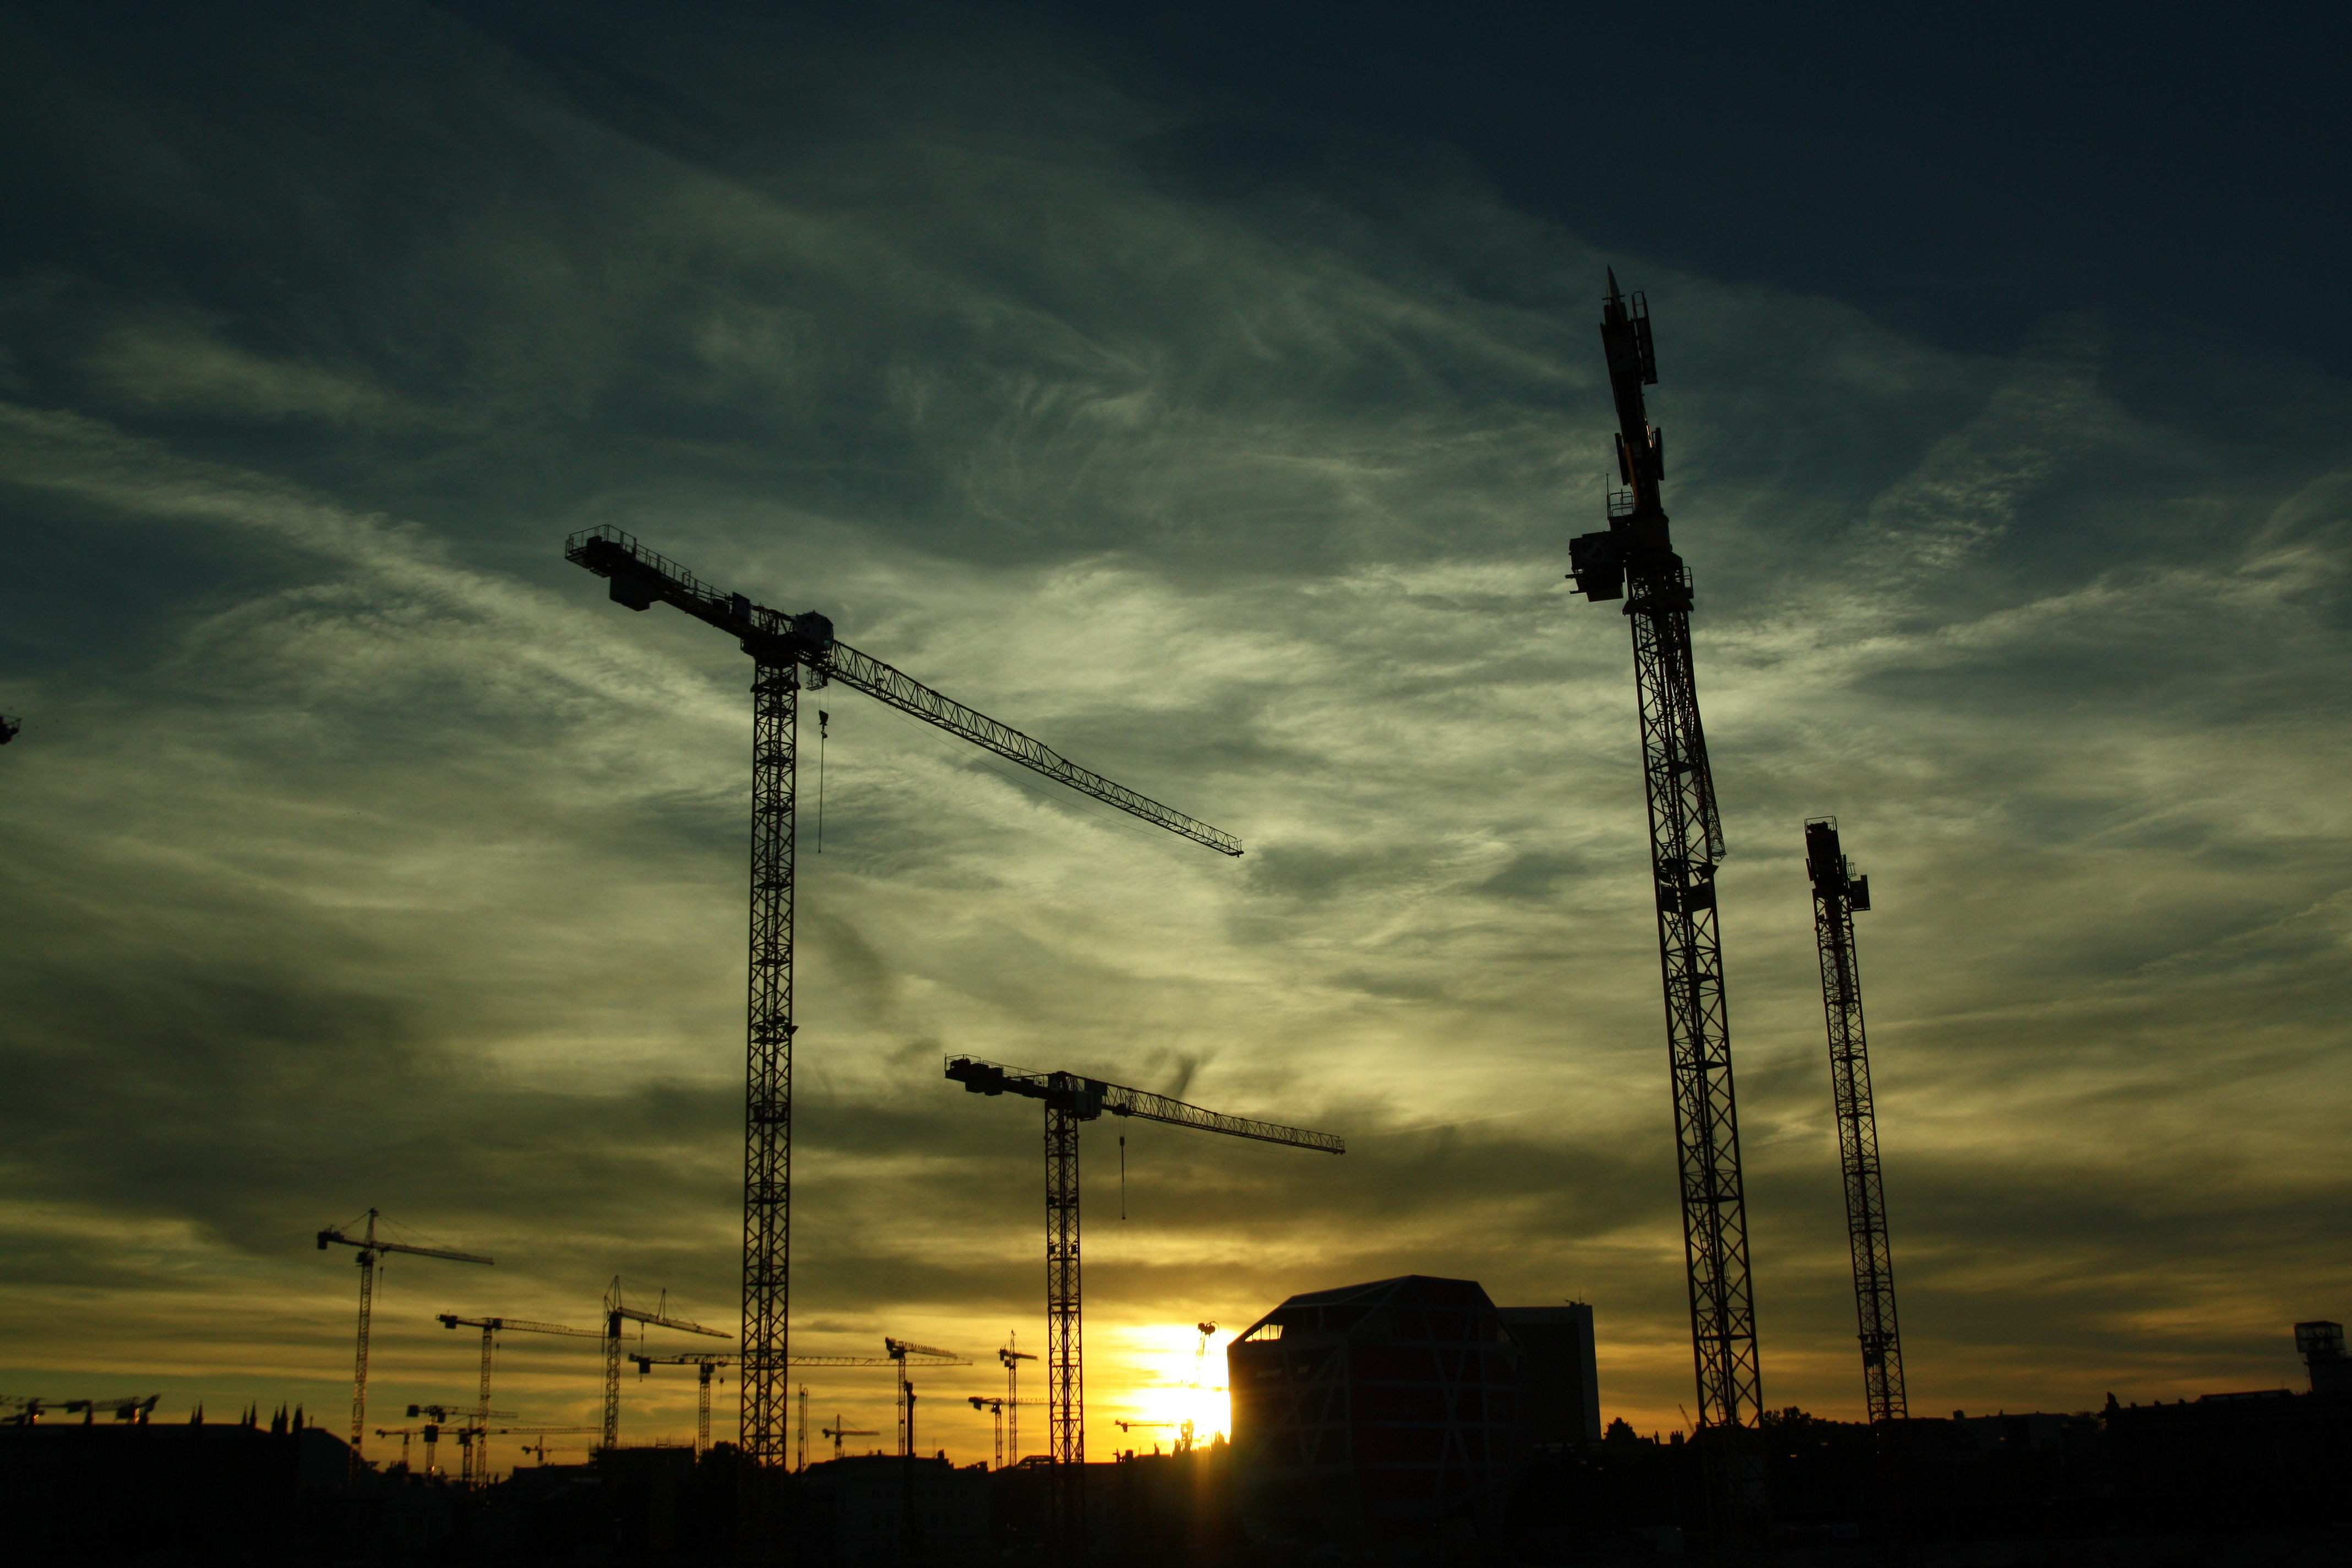 construction images pexels free stock photos